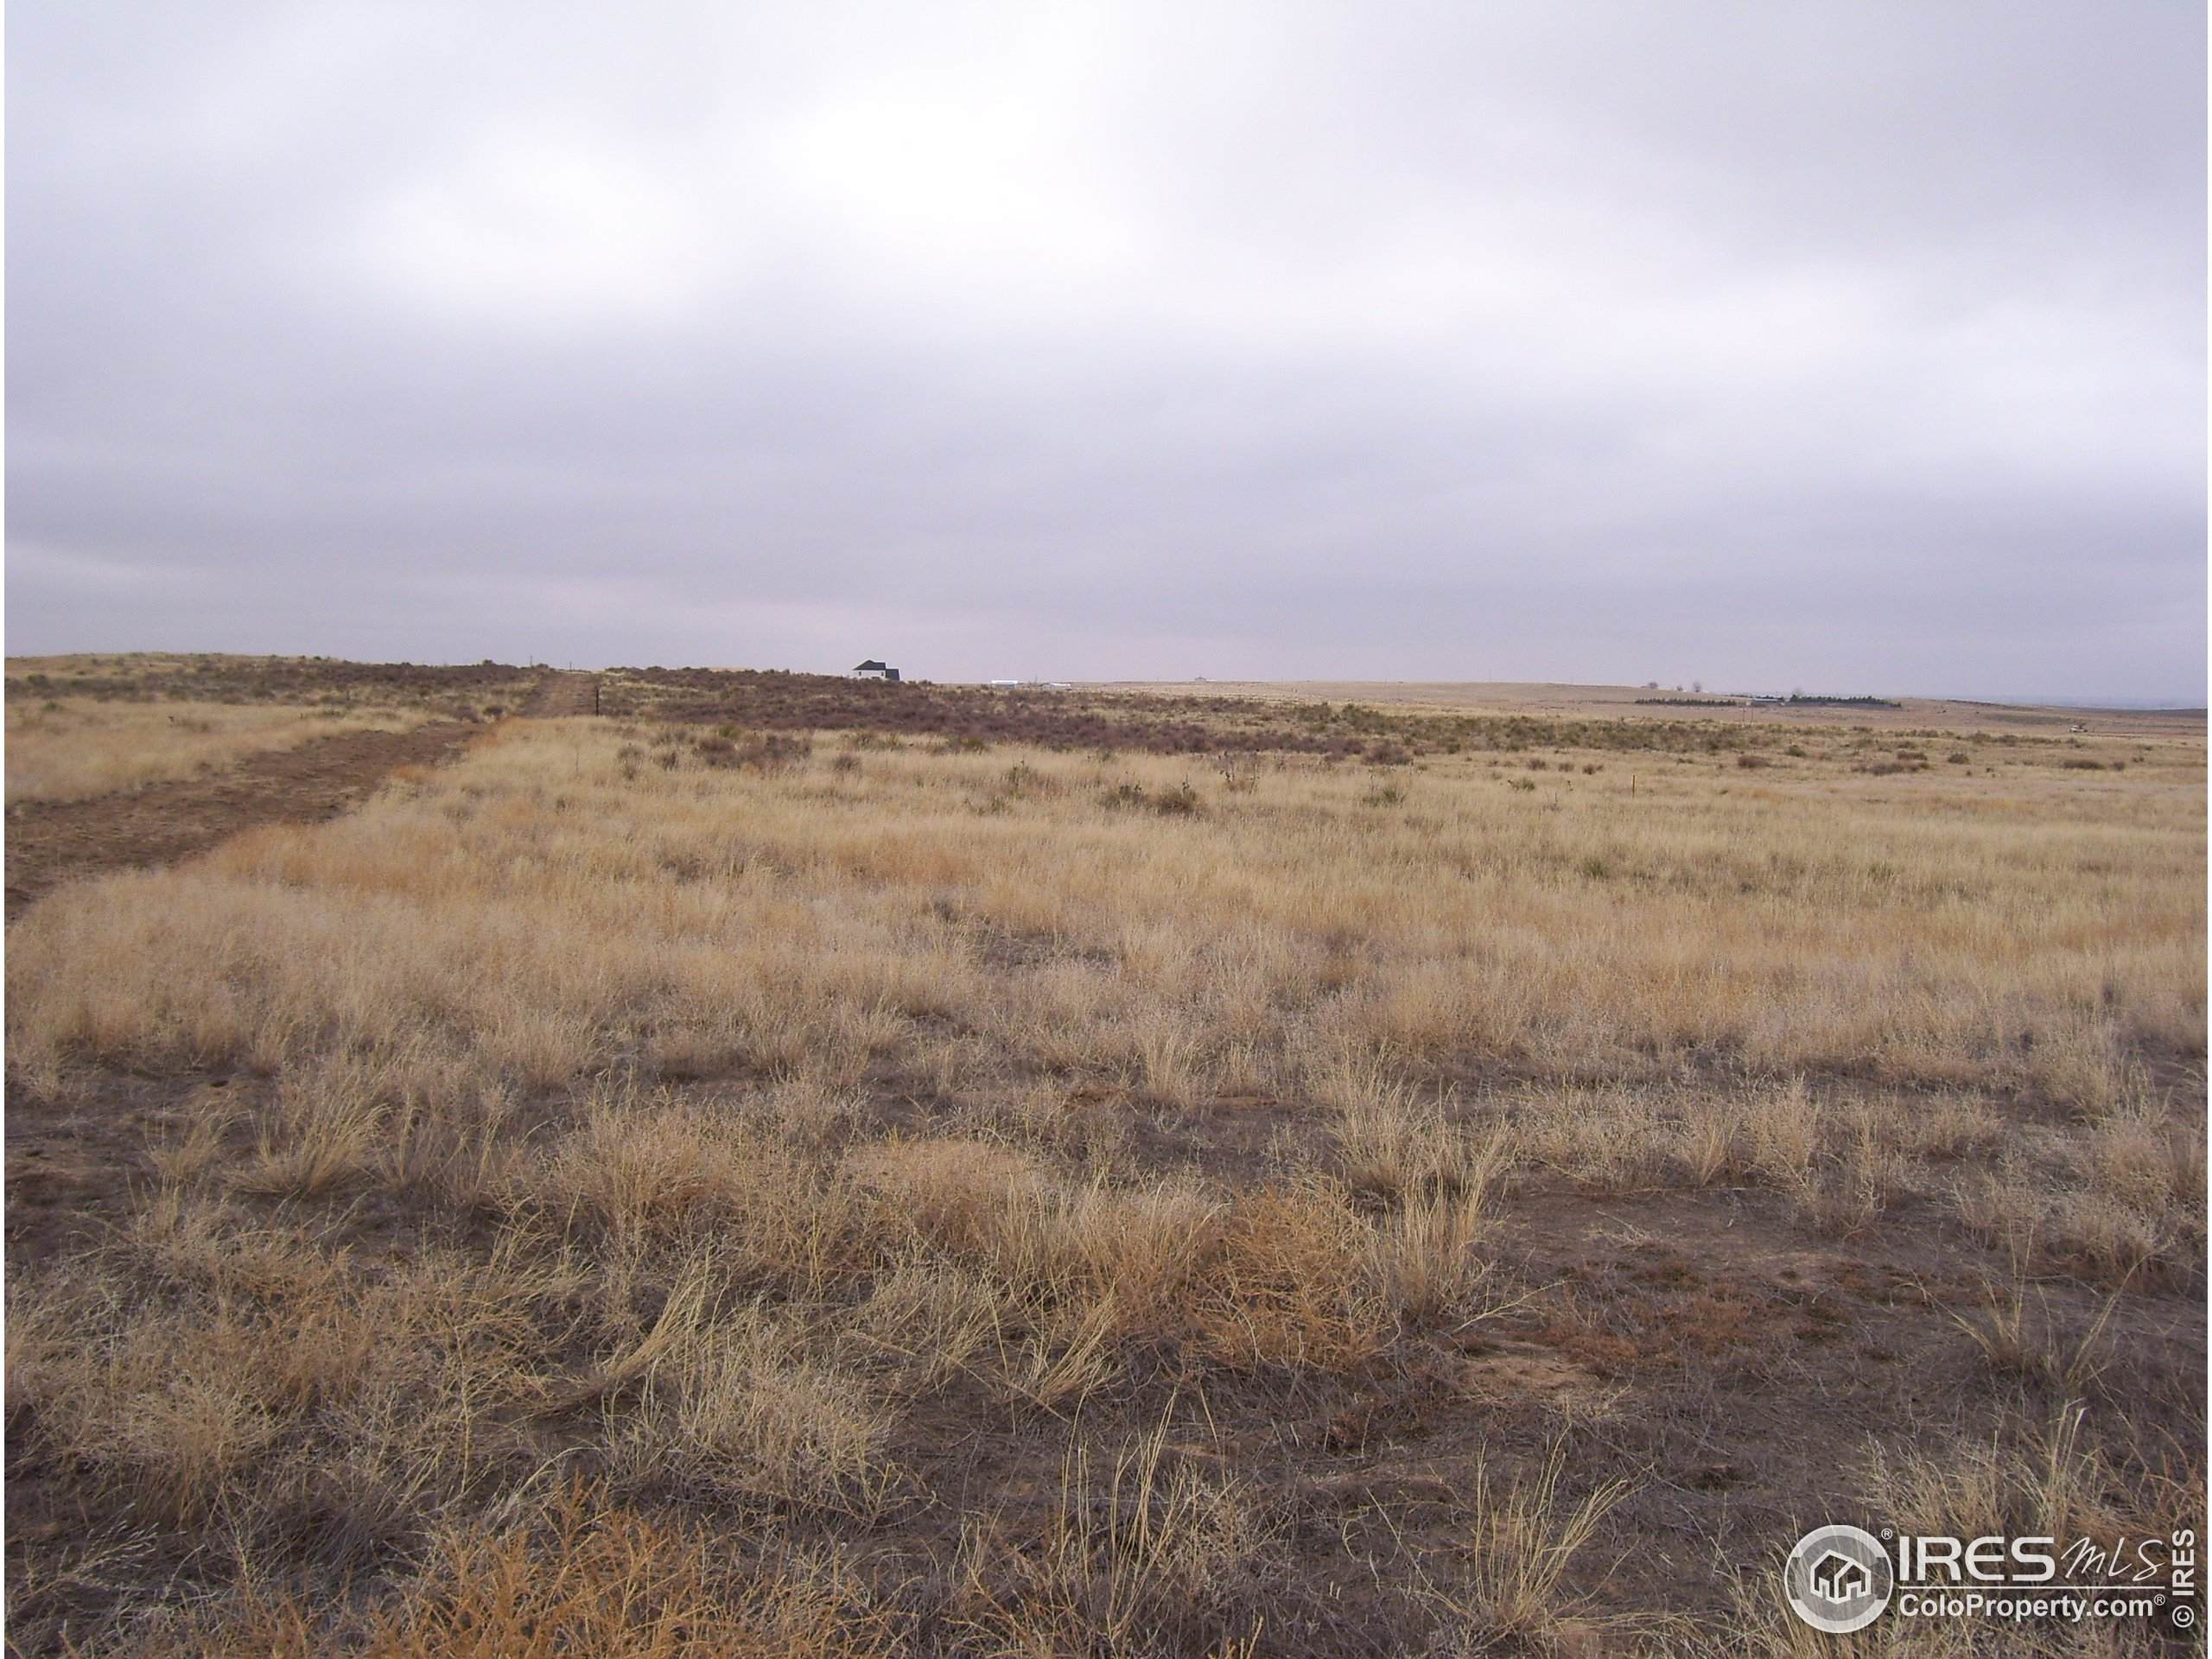 5117 Lake Trail Ct, Firestone, CO 80504 (MLS #913556) :: J2 Real Estate Group at Remax Alliance